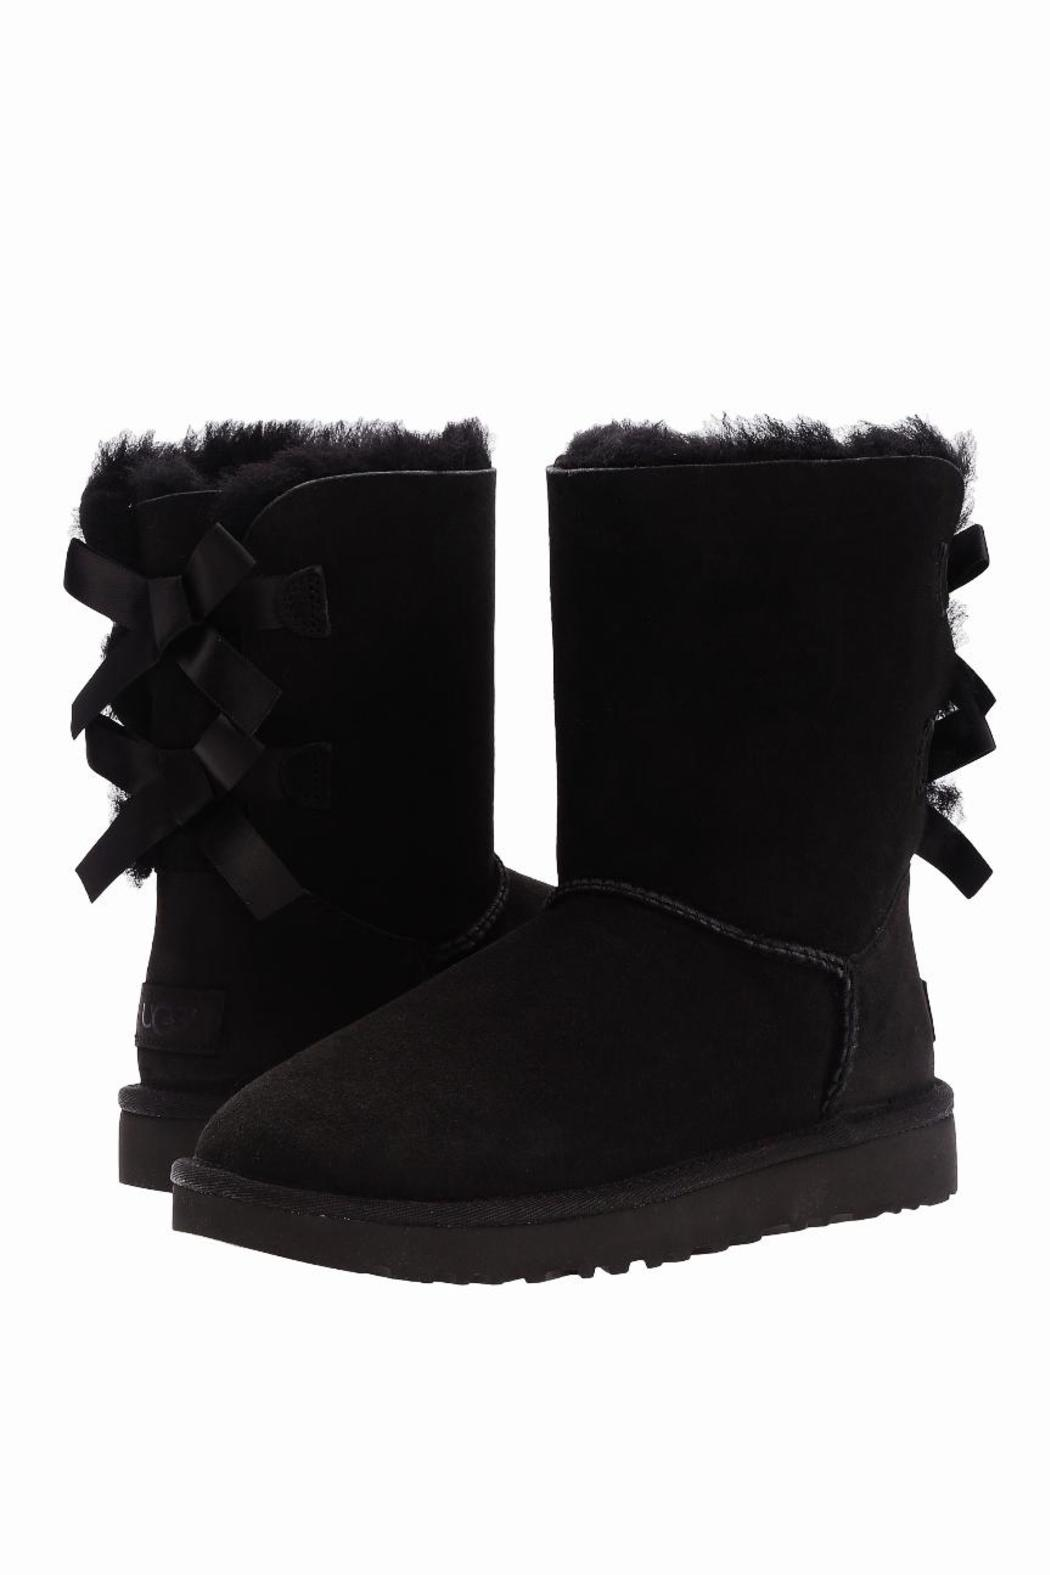 ugg low bailey bow